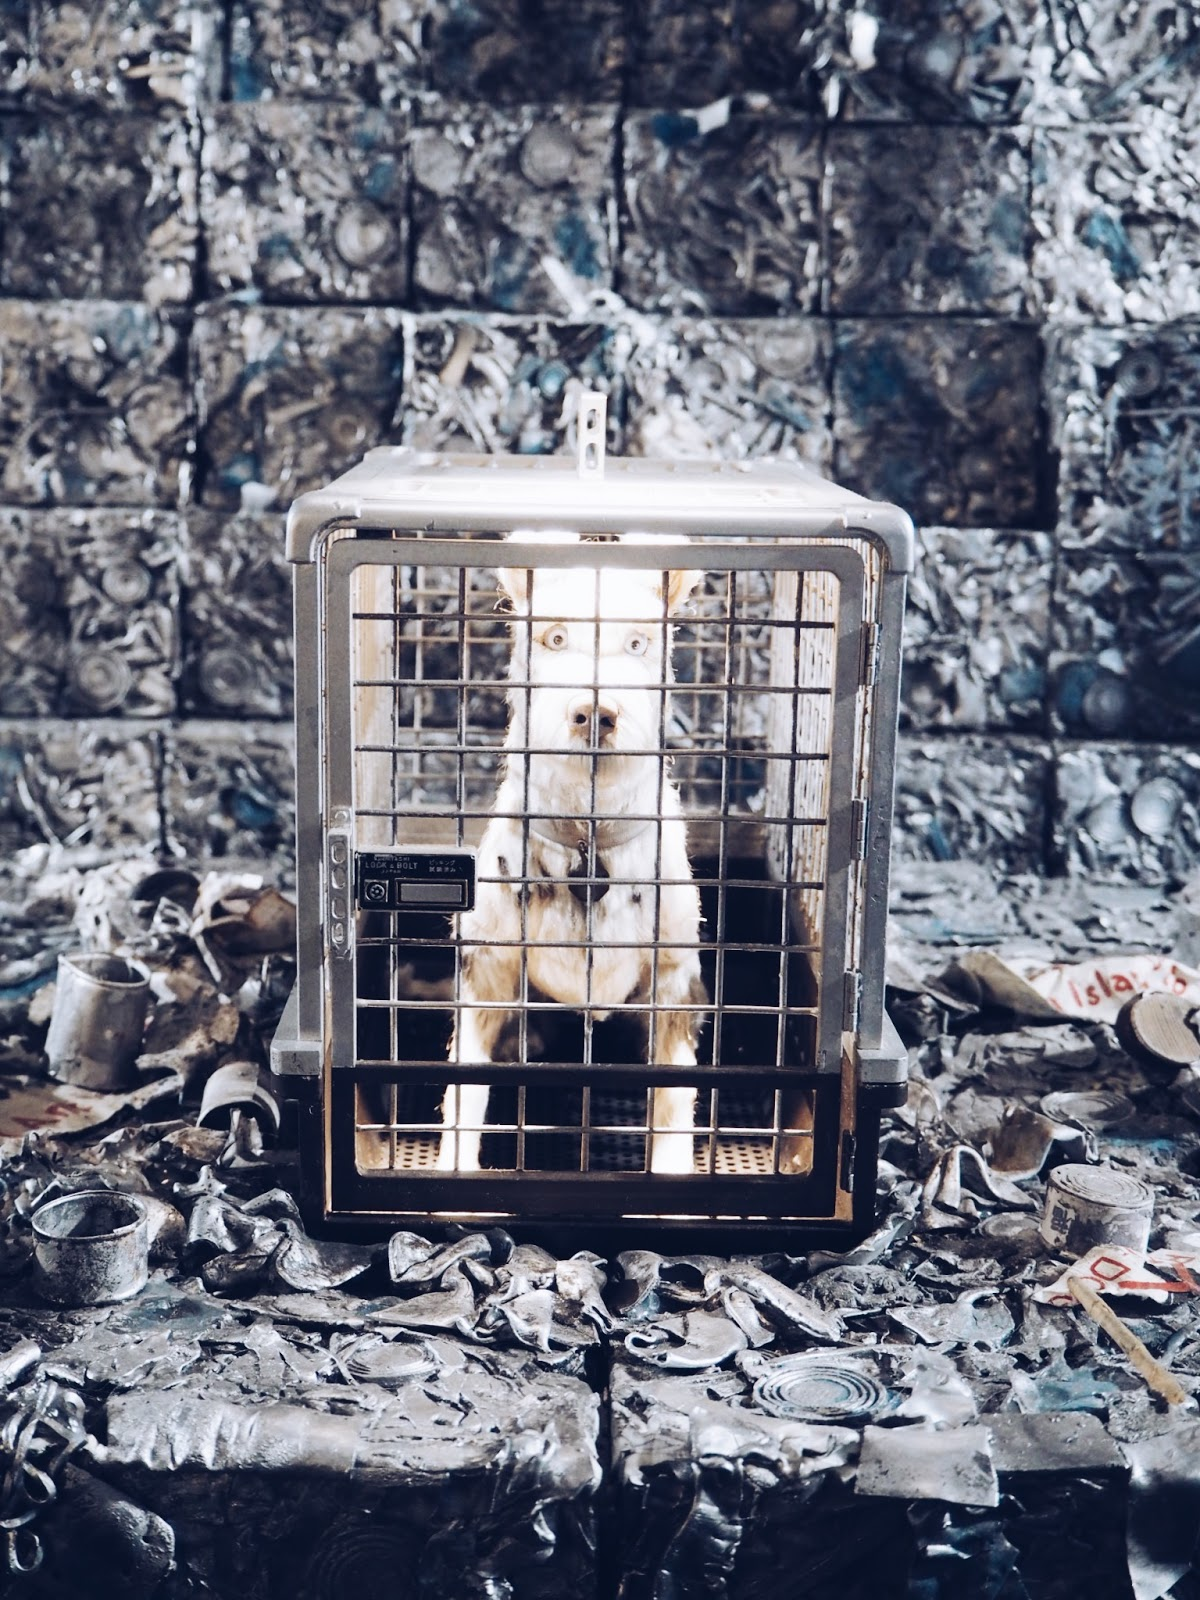 dog puppet in cage on trash island